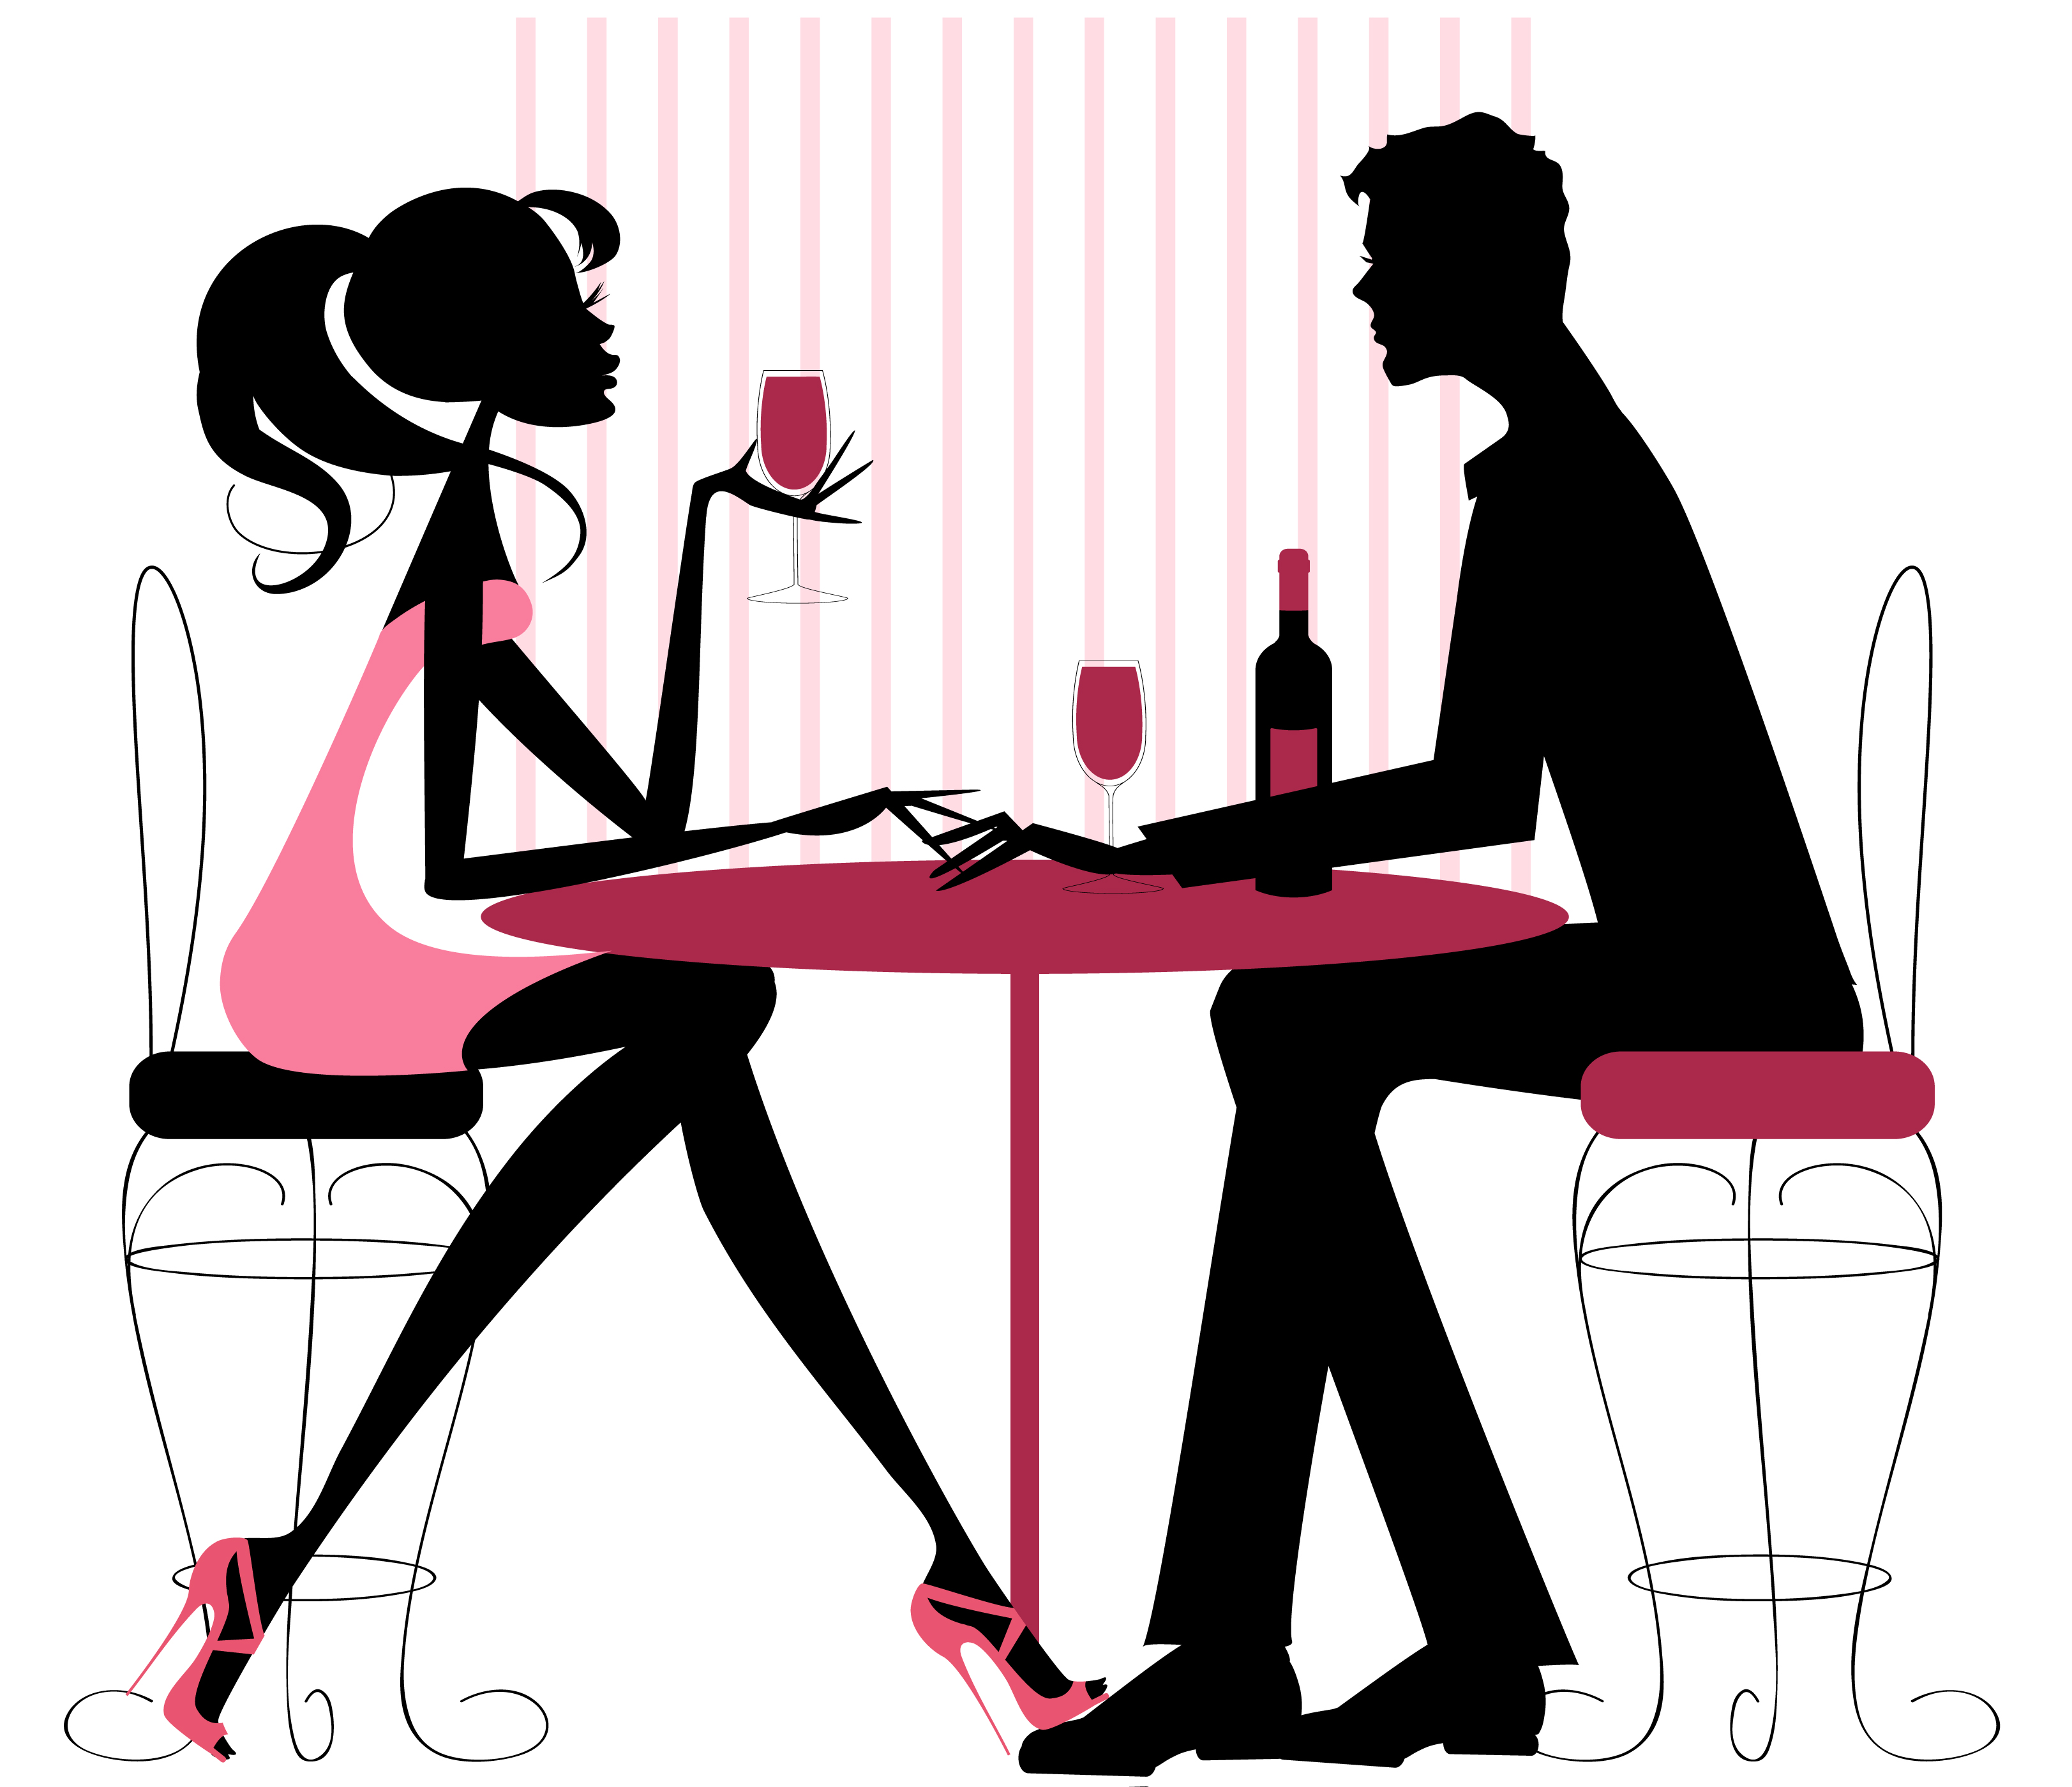 Speed dating clipart banner black and white library Speed dating clipart - ClipartFest banner black and white library